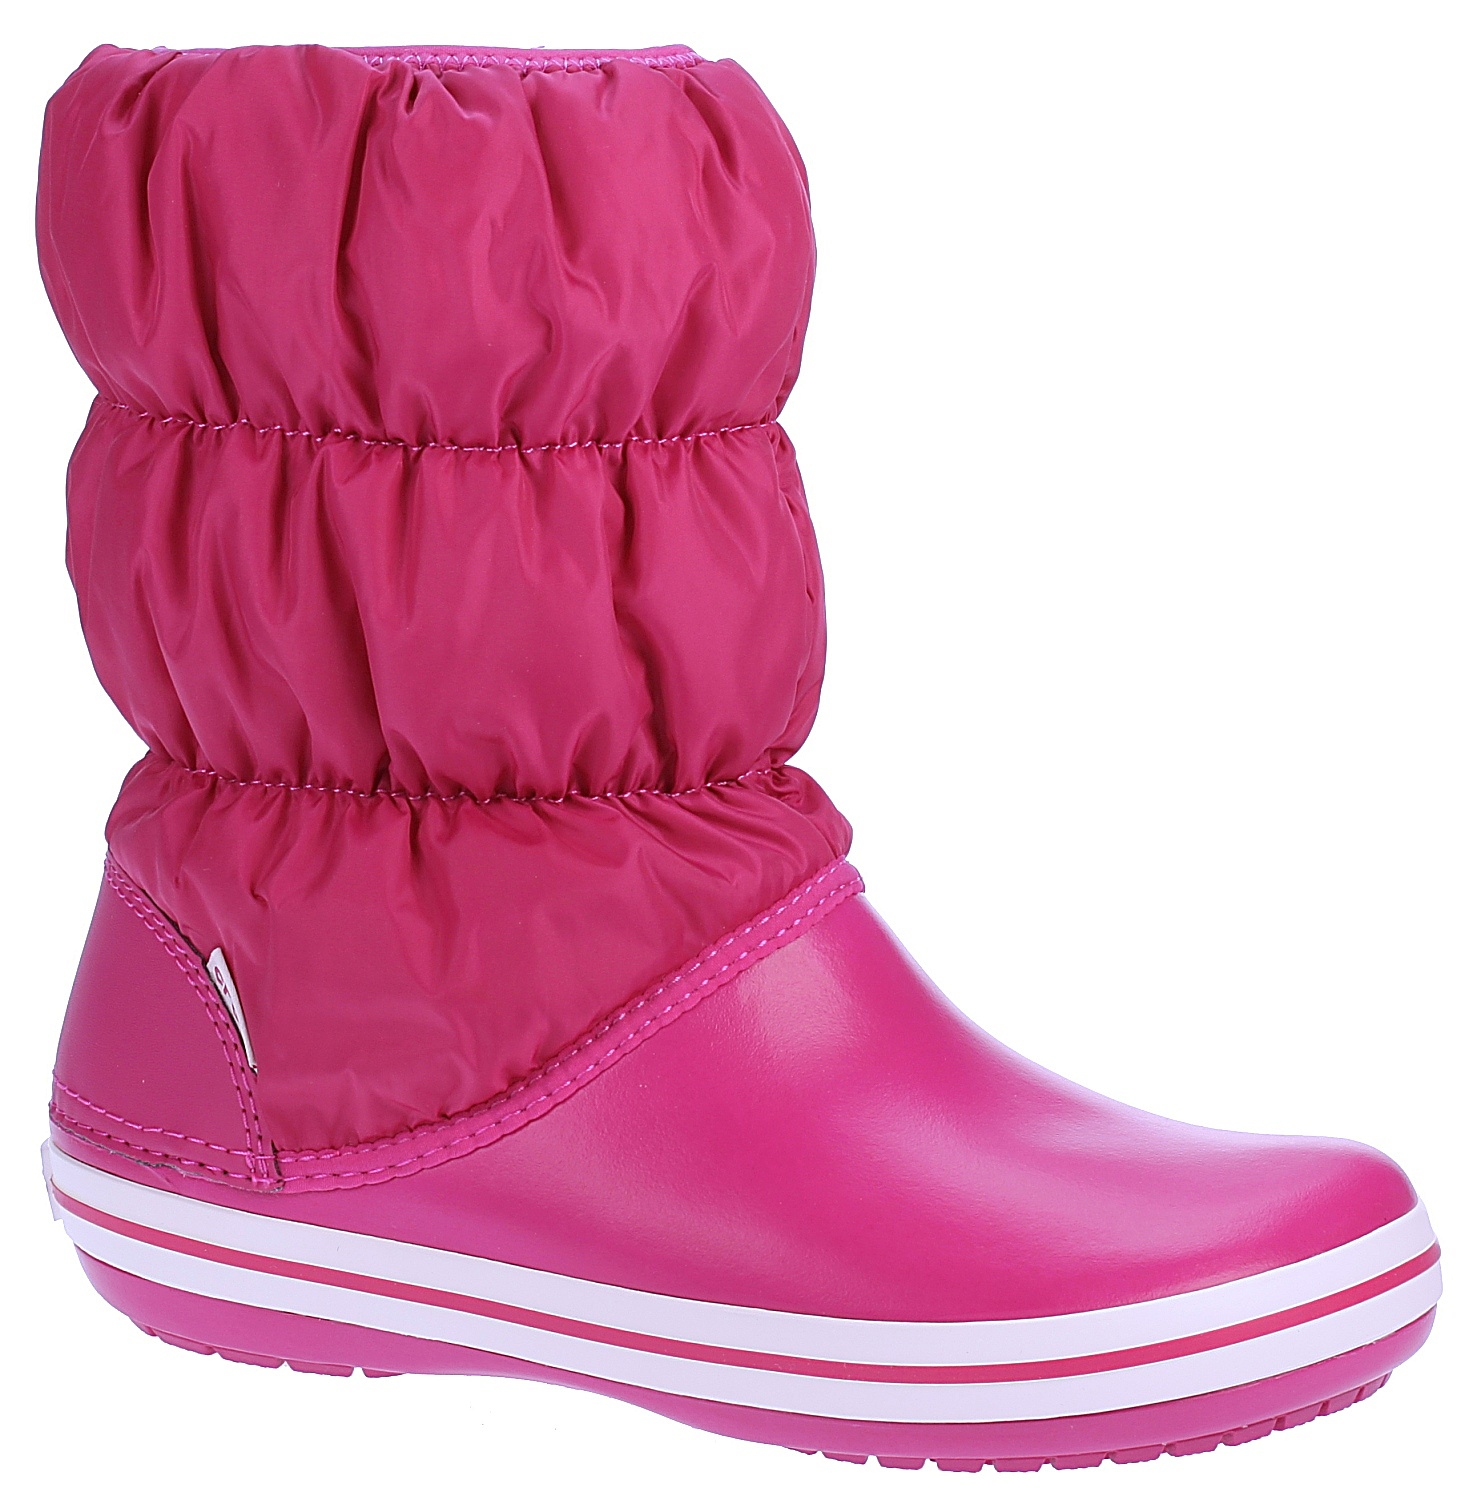 boty Crocs Winter Puff Boot - Candy Pink Candy Pink 36 37 a1799e3c7b